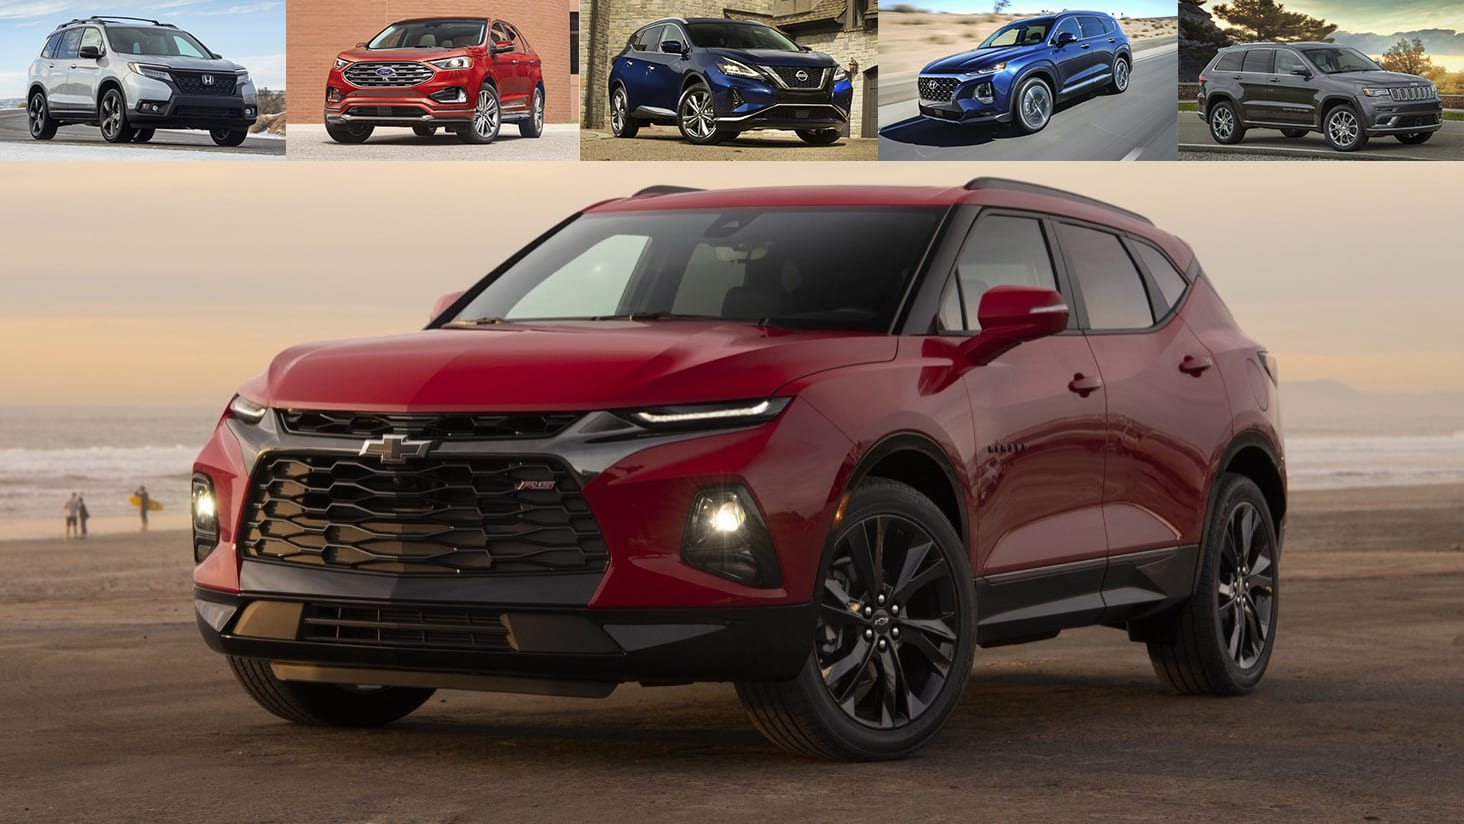 2019 Chevrolet Blazer and other crossovers